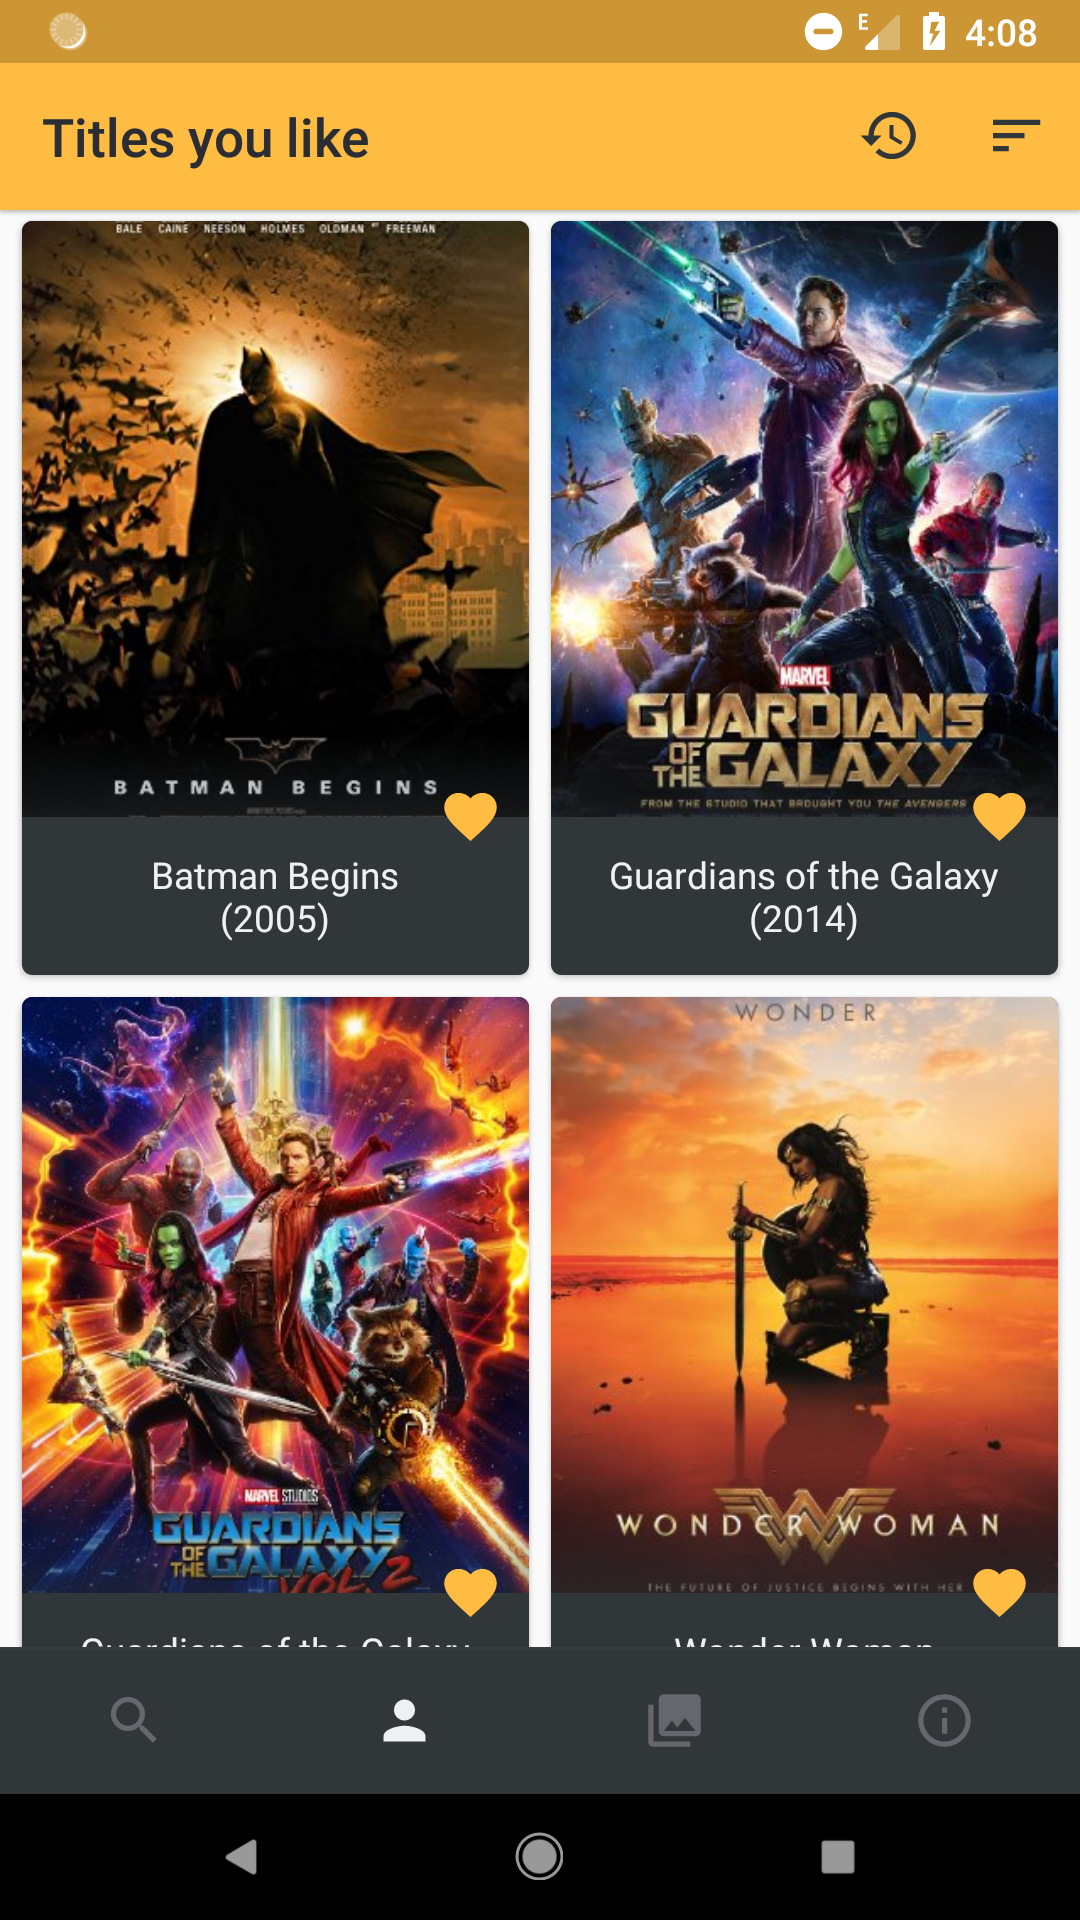 Android app to show movie ratings when browsing Netflix